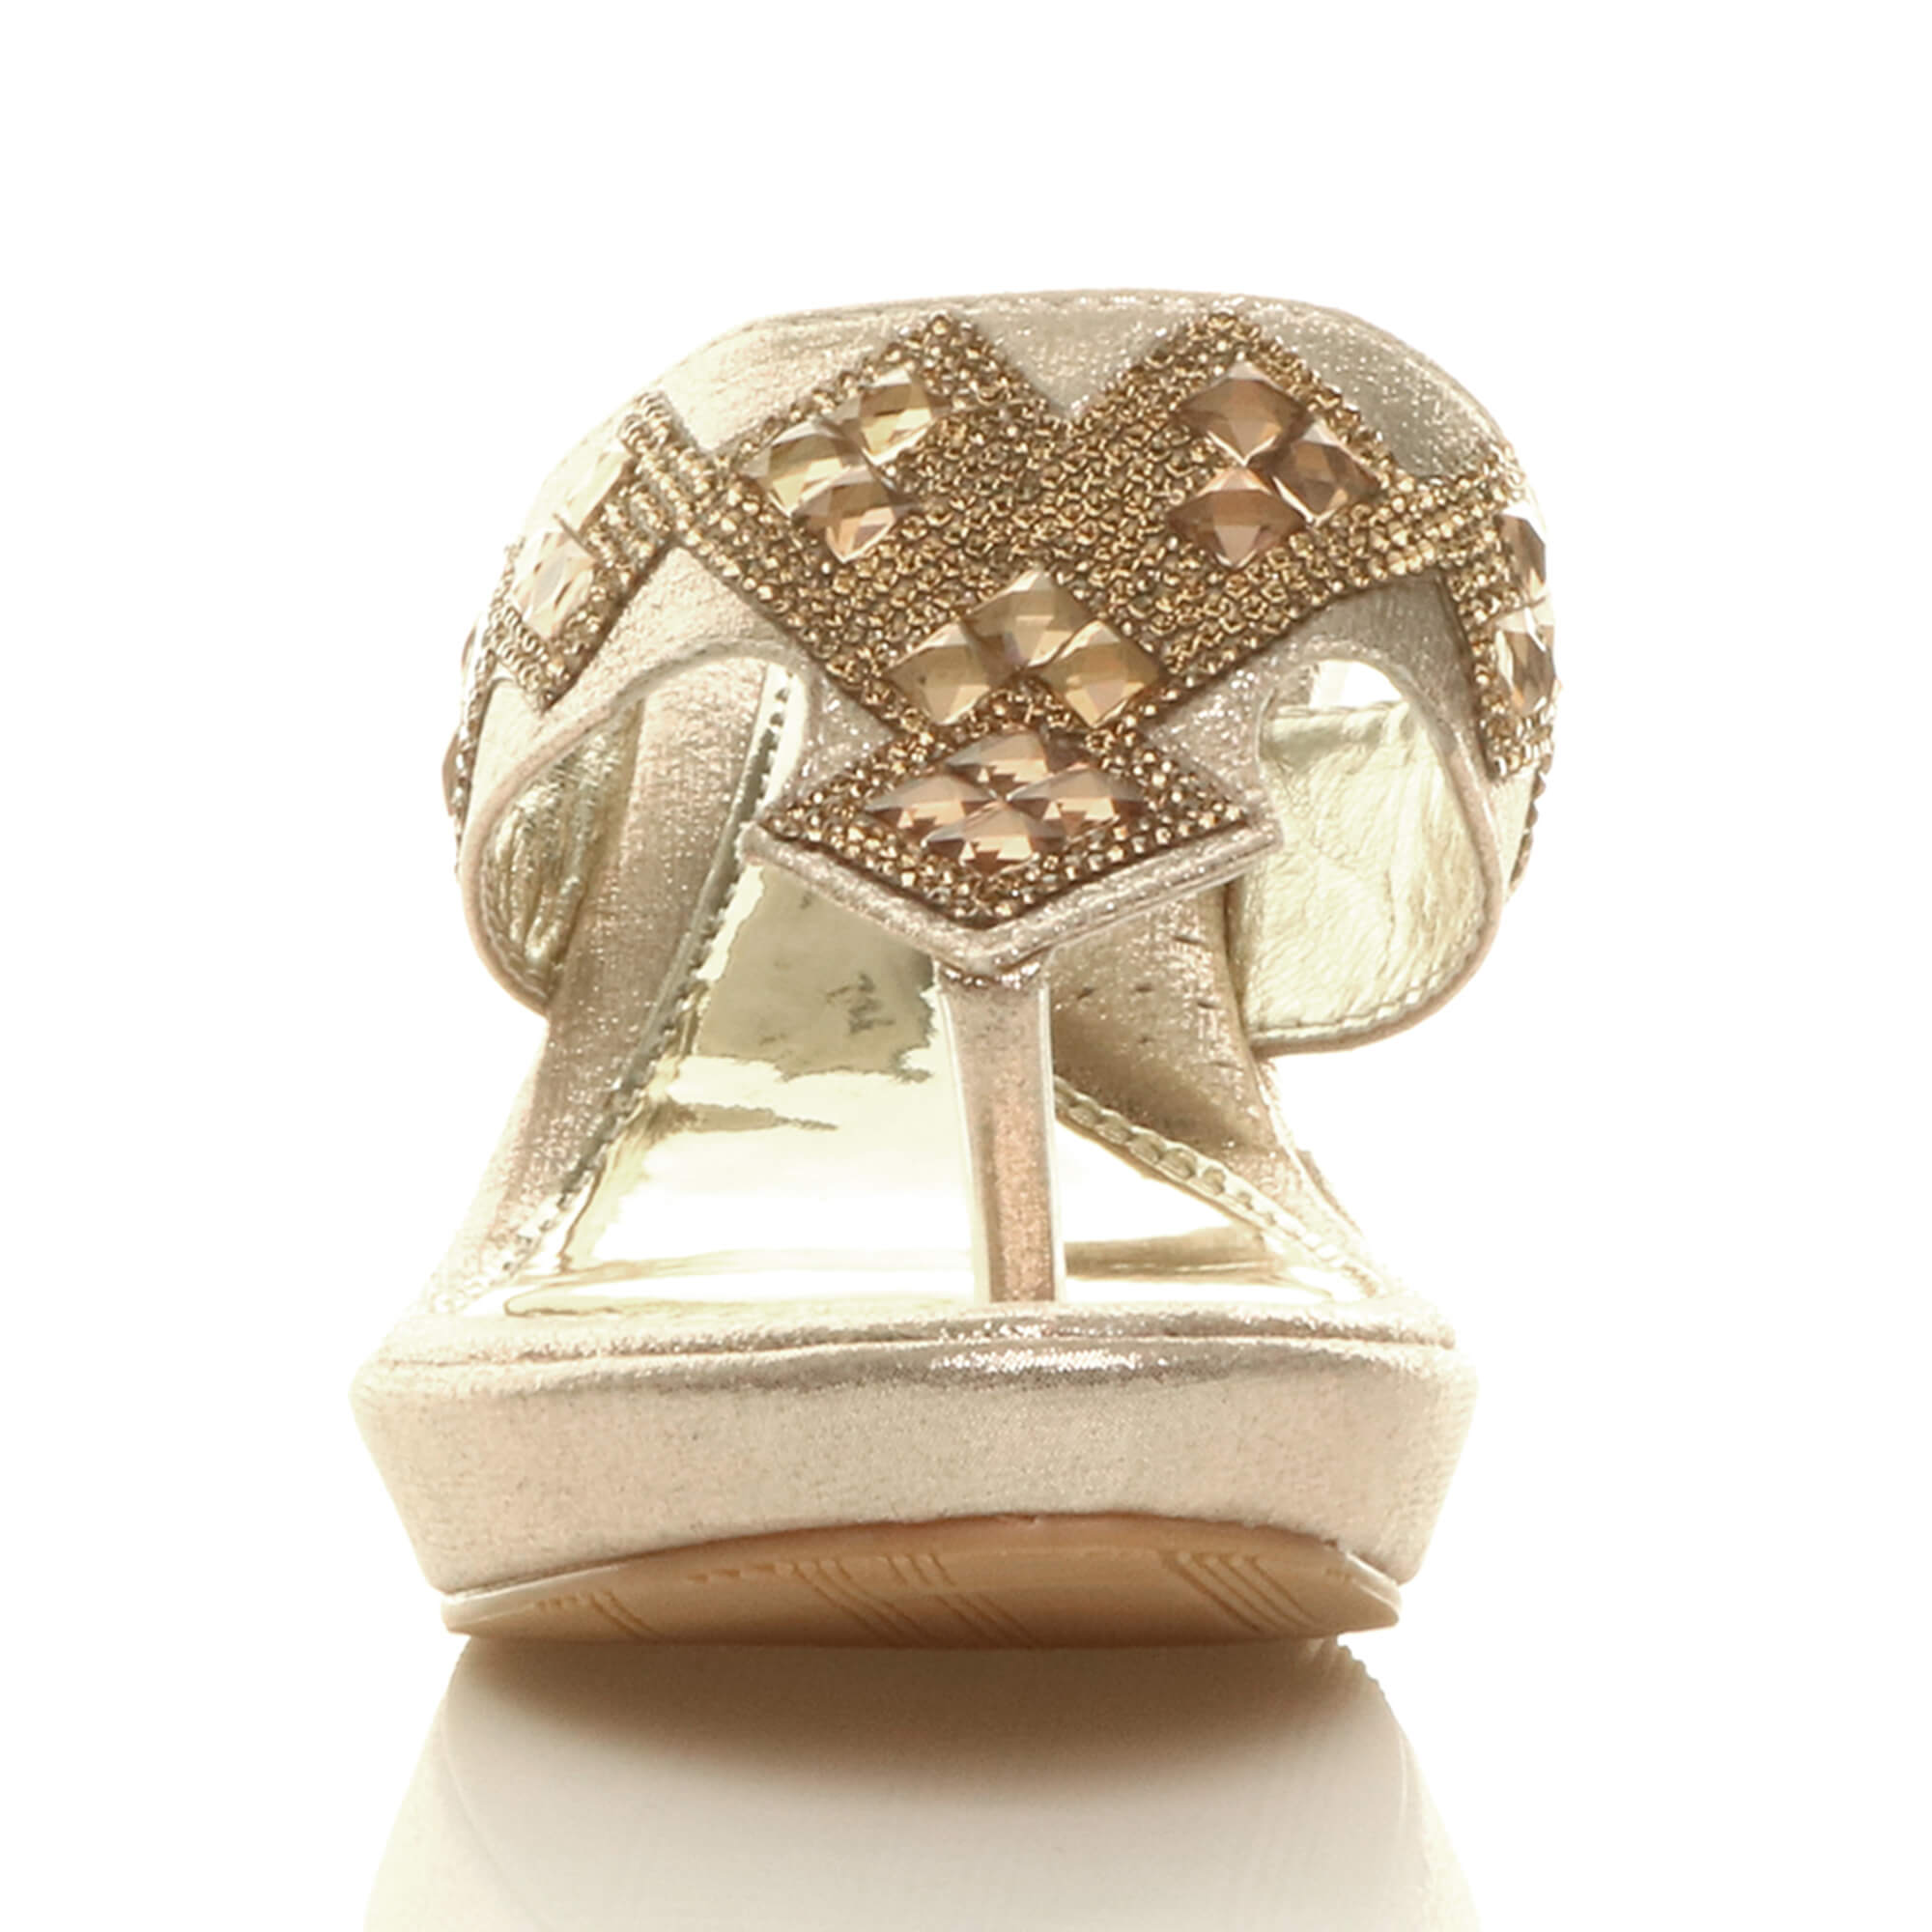 WOMENS-LADIES-HIGH-WEDGE-T-BAR-TOE-POST-DIAMANTE-PLATFORM-MULES-SANDALS-SIZE thumbnail 7